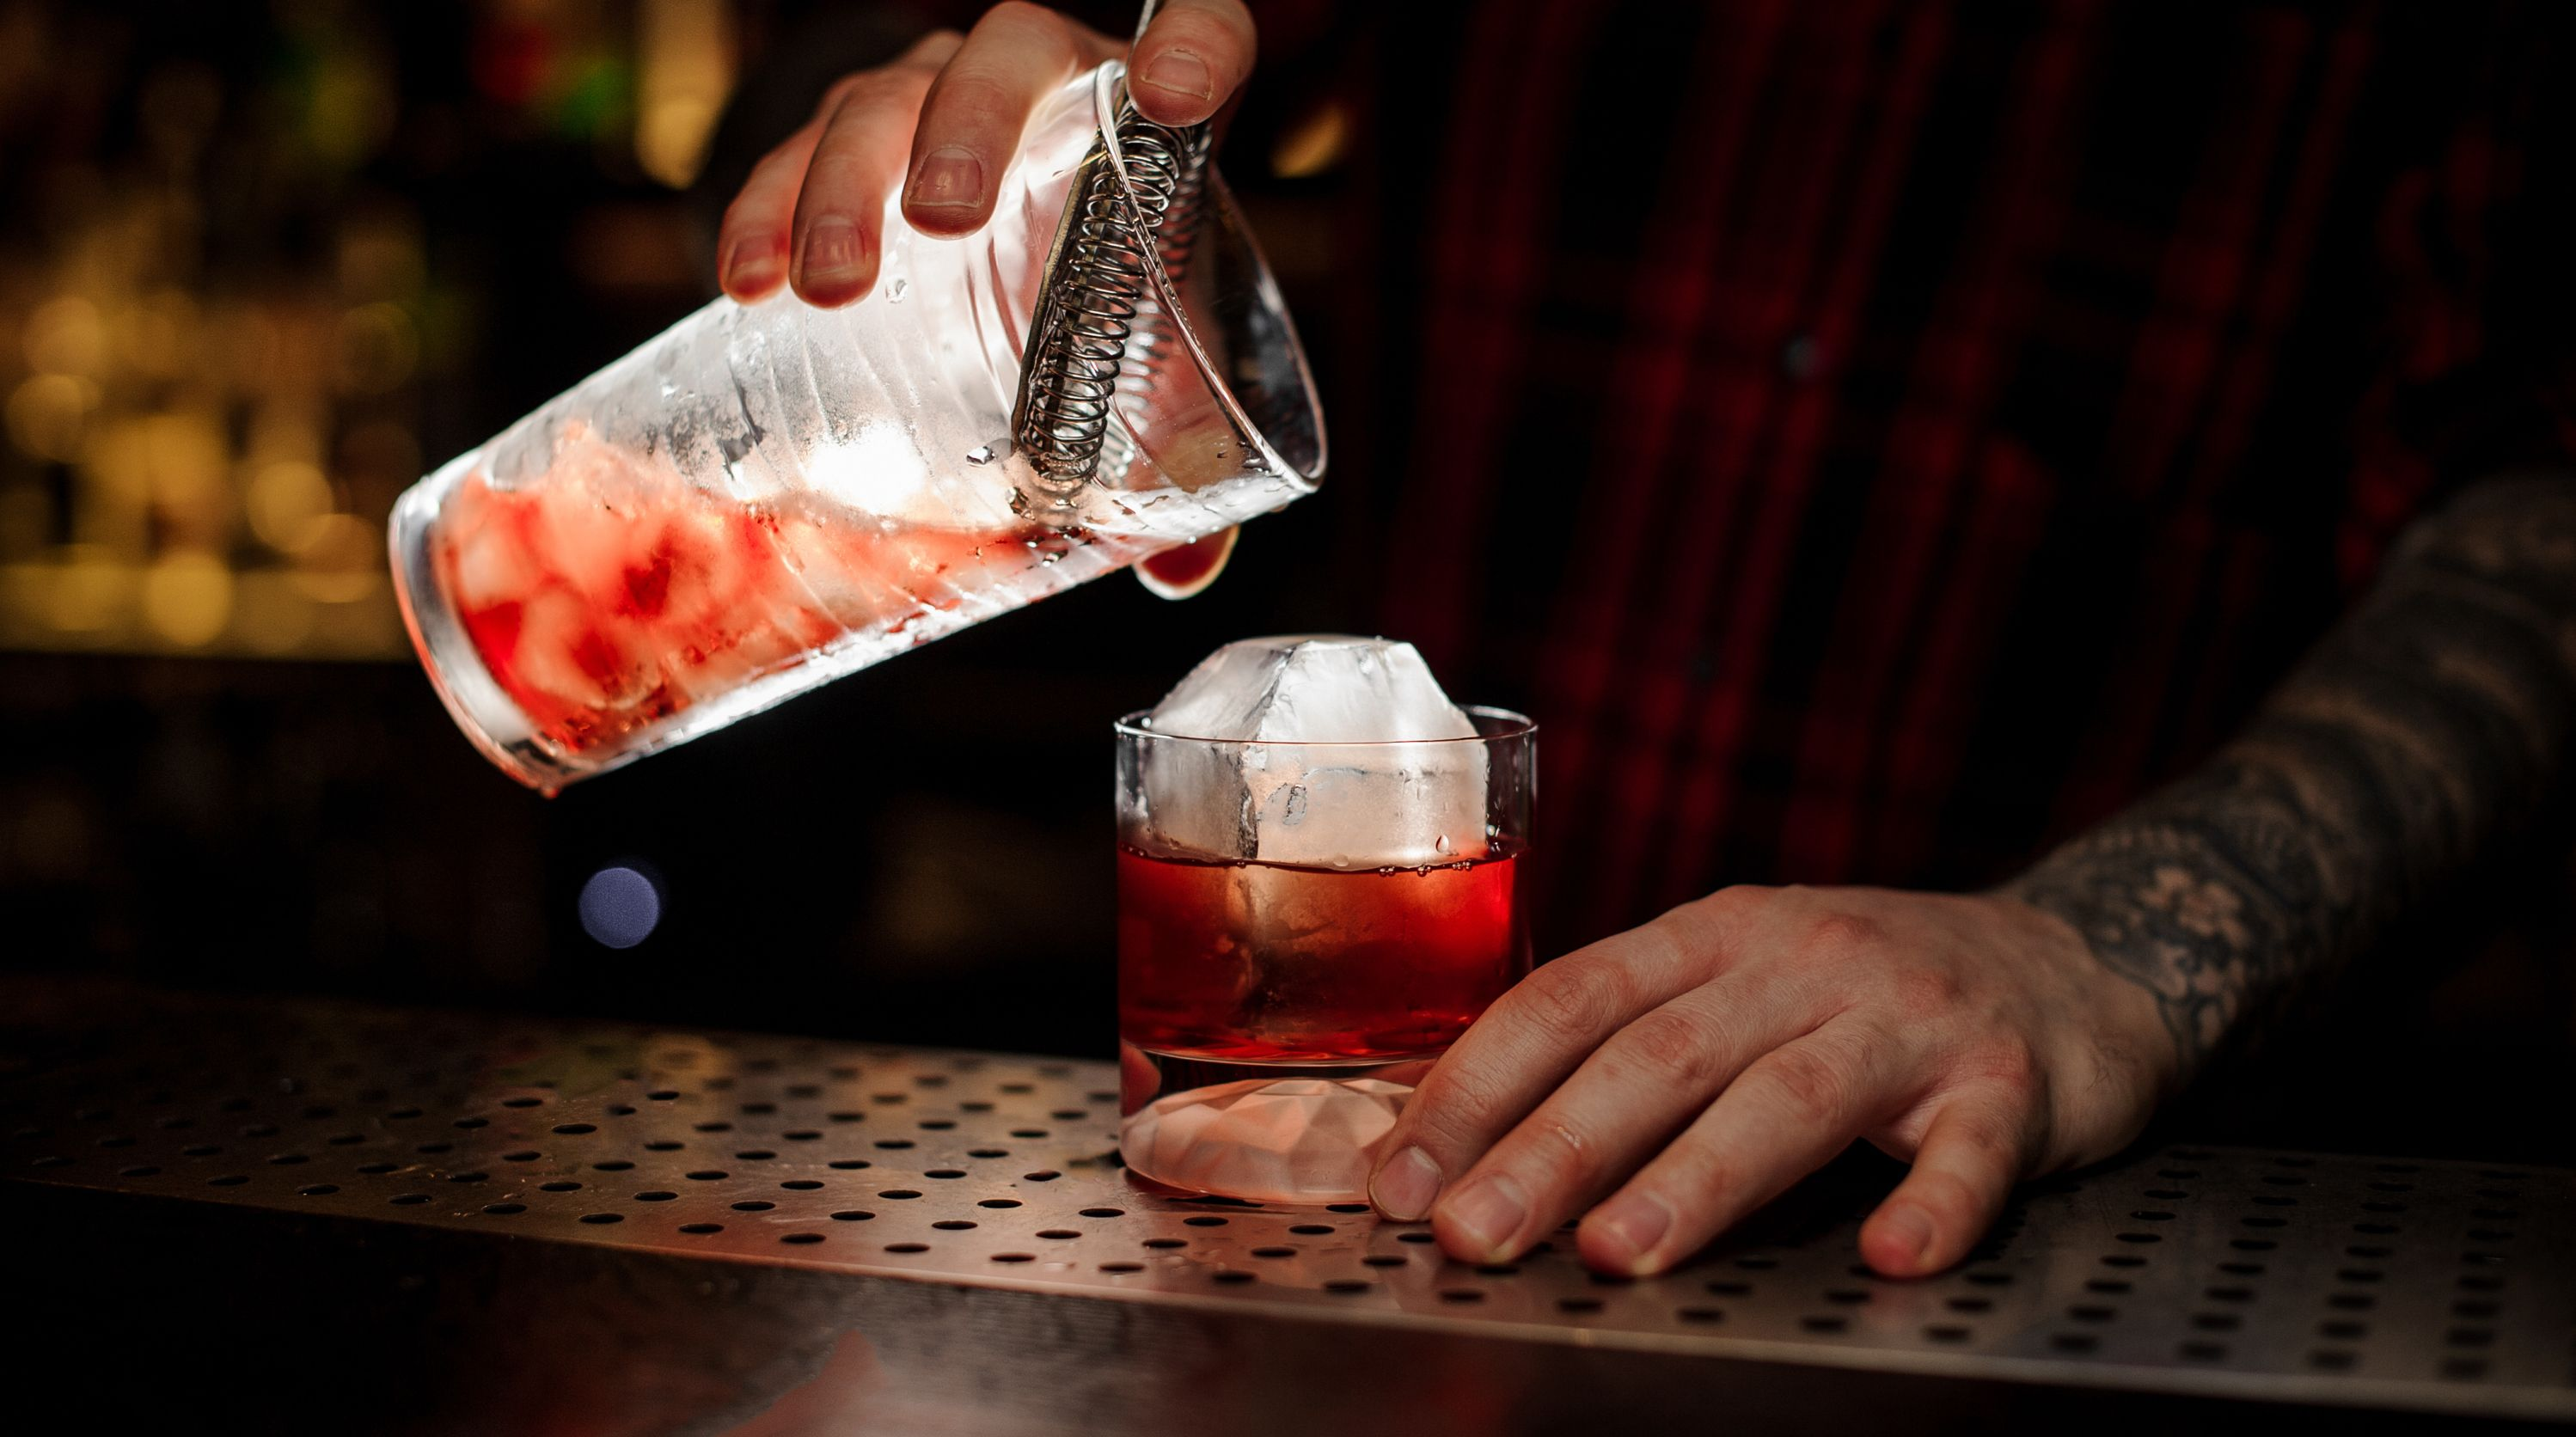 A bar tender pours a drink at the bar of a venue.